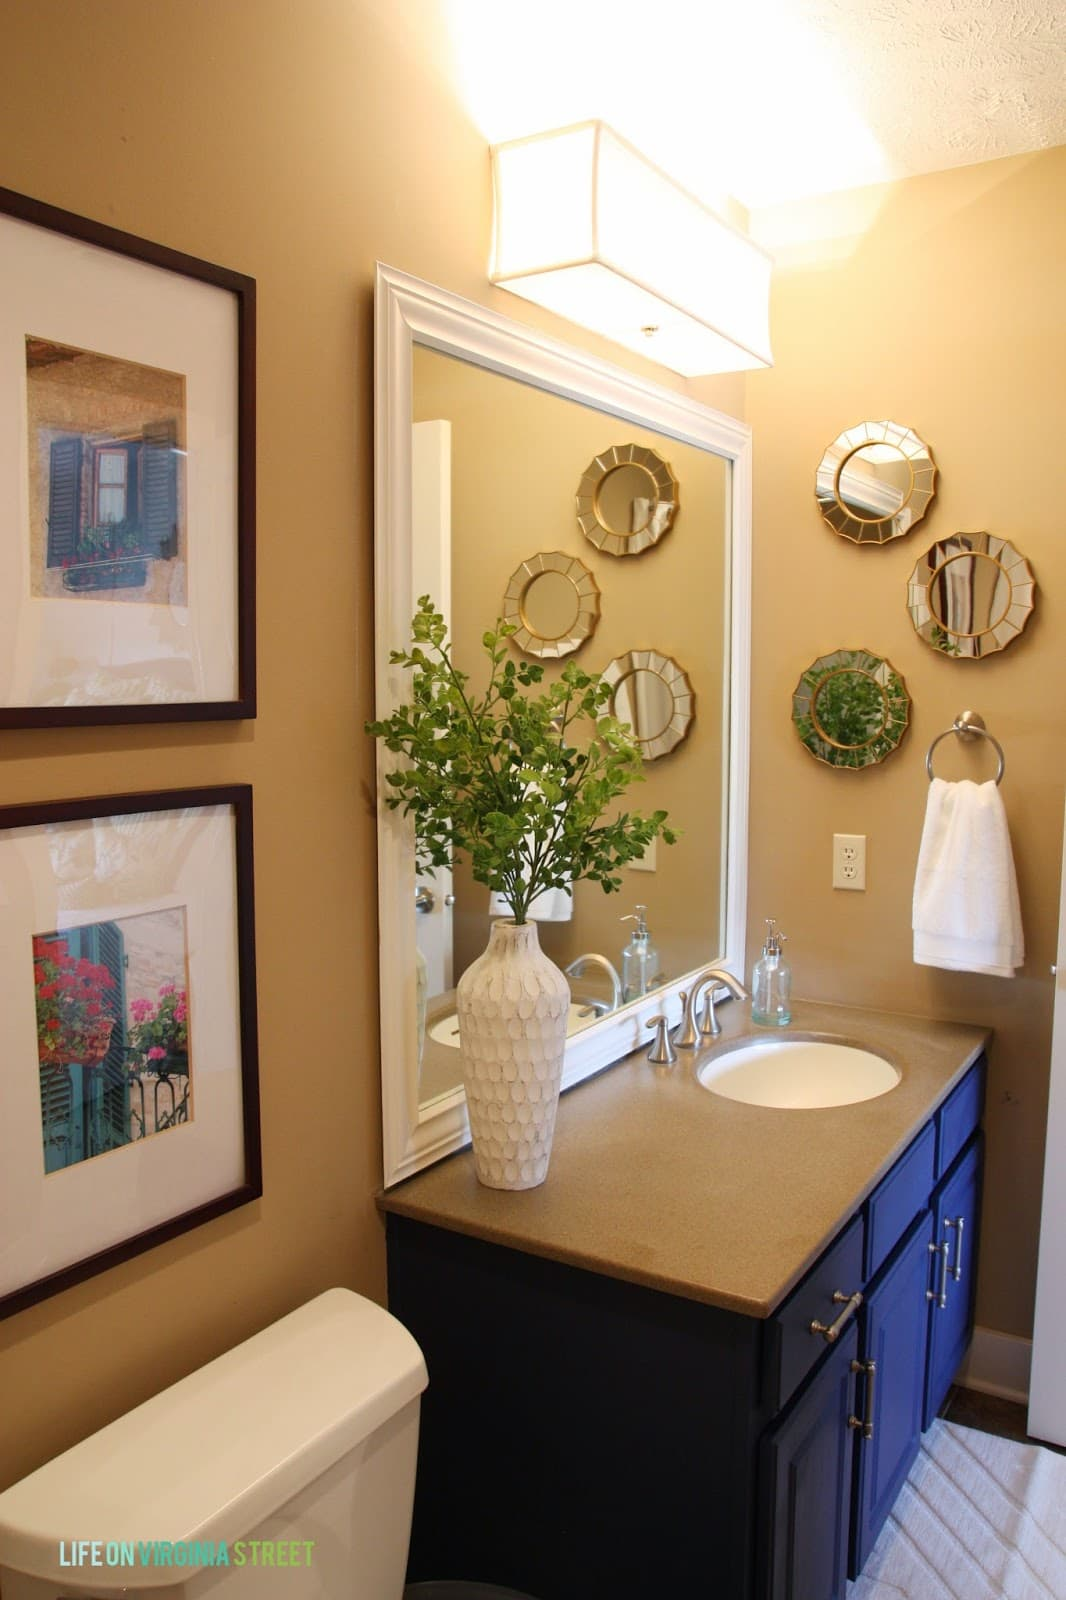 In addition to making over the vanity, I also added a lot more interesting pieces and accessories to the space like these small round mirrors with gold trim and this white vase.